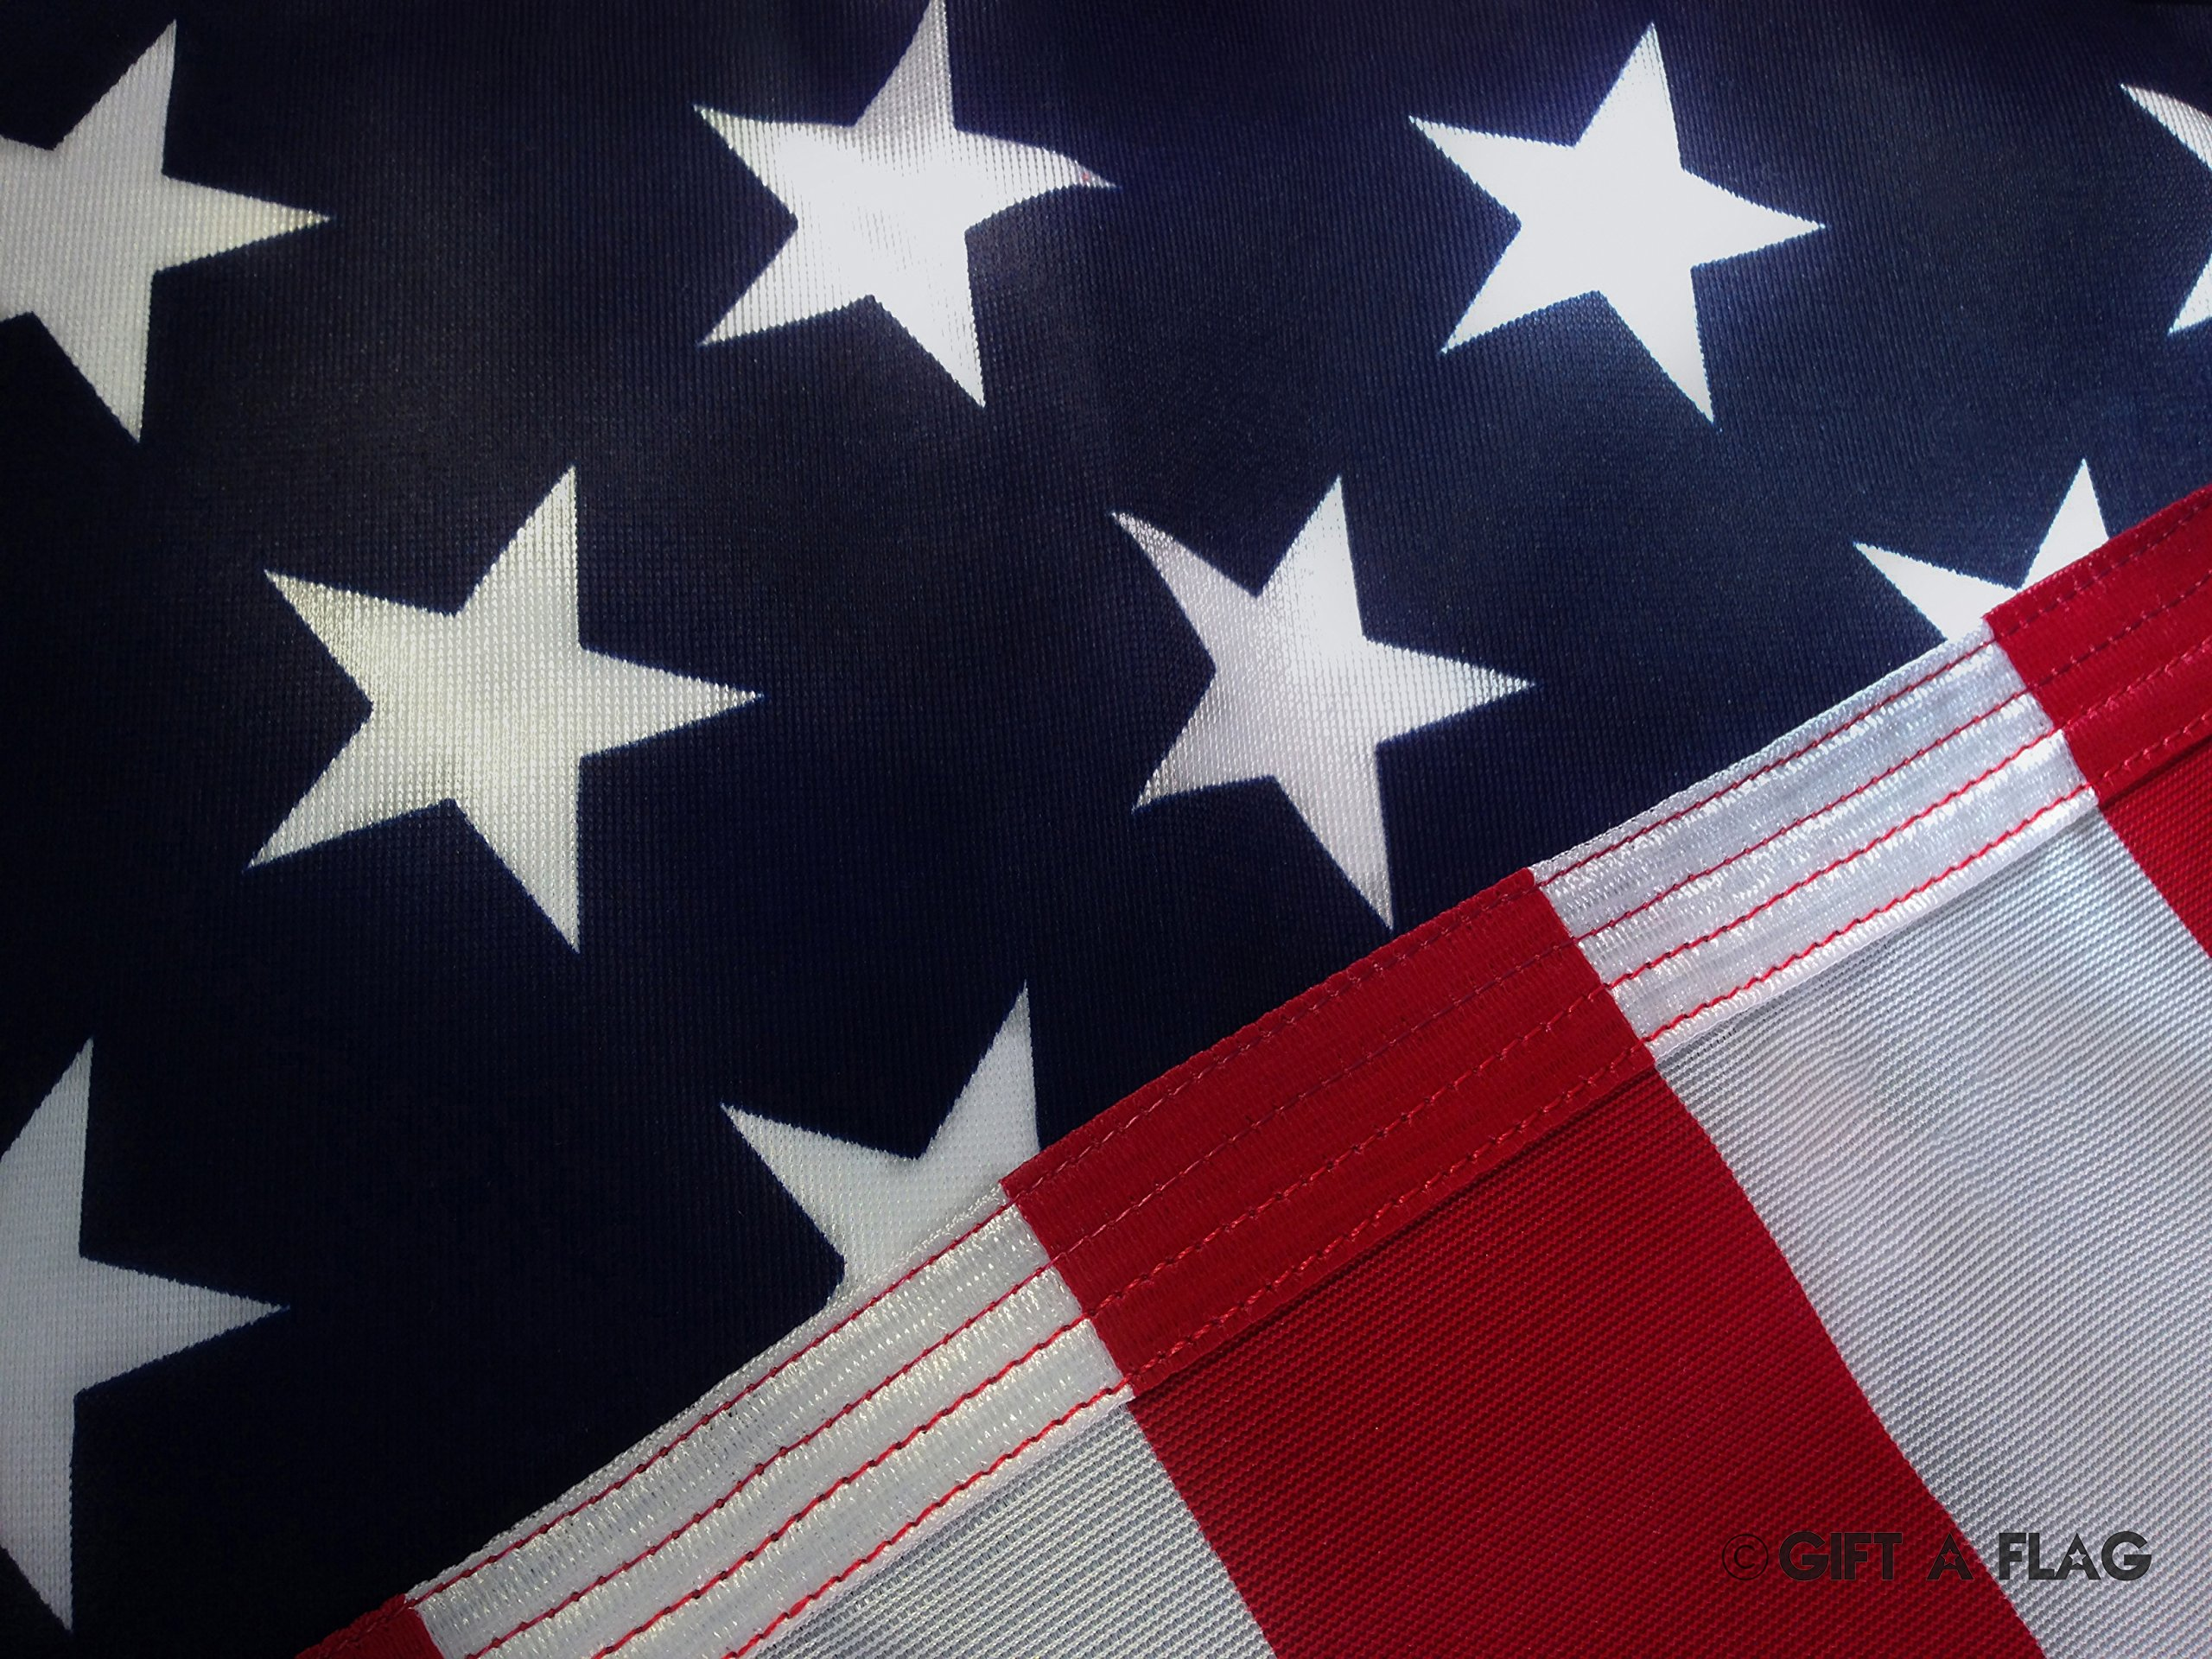 Gift A Flag American Flag. Made in the USA 3x5 foot Knit Polyester U.S. Cloth. Perfect Replacement.